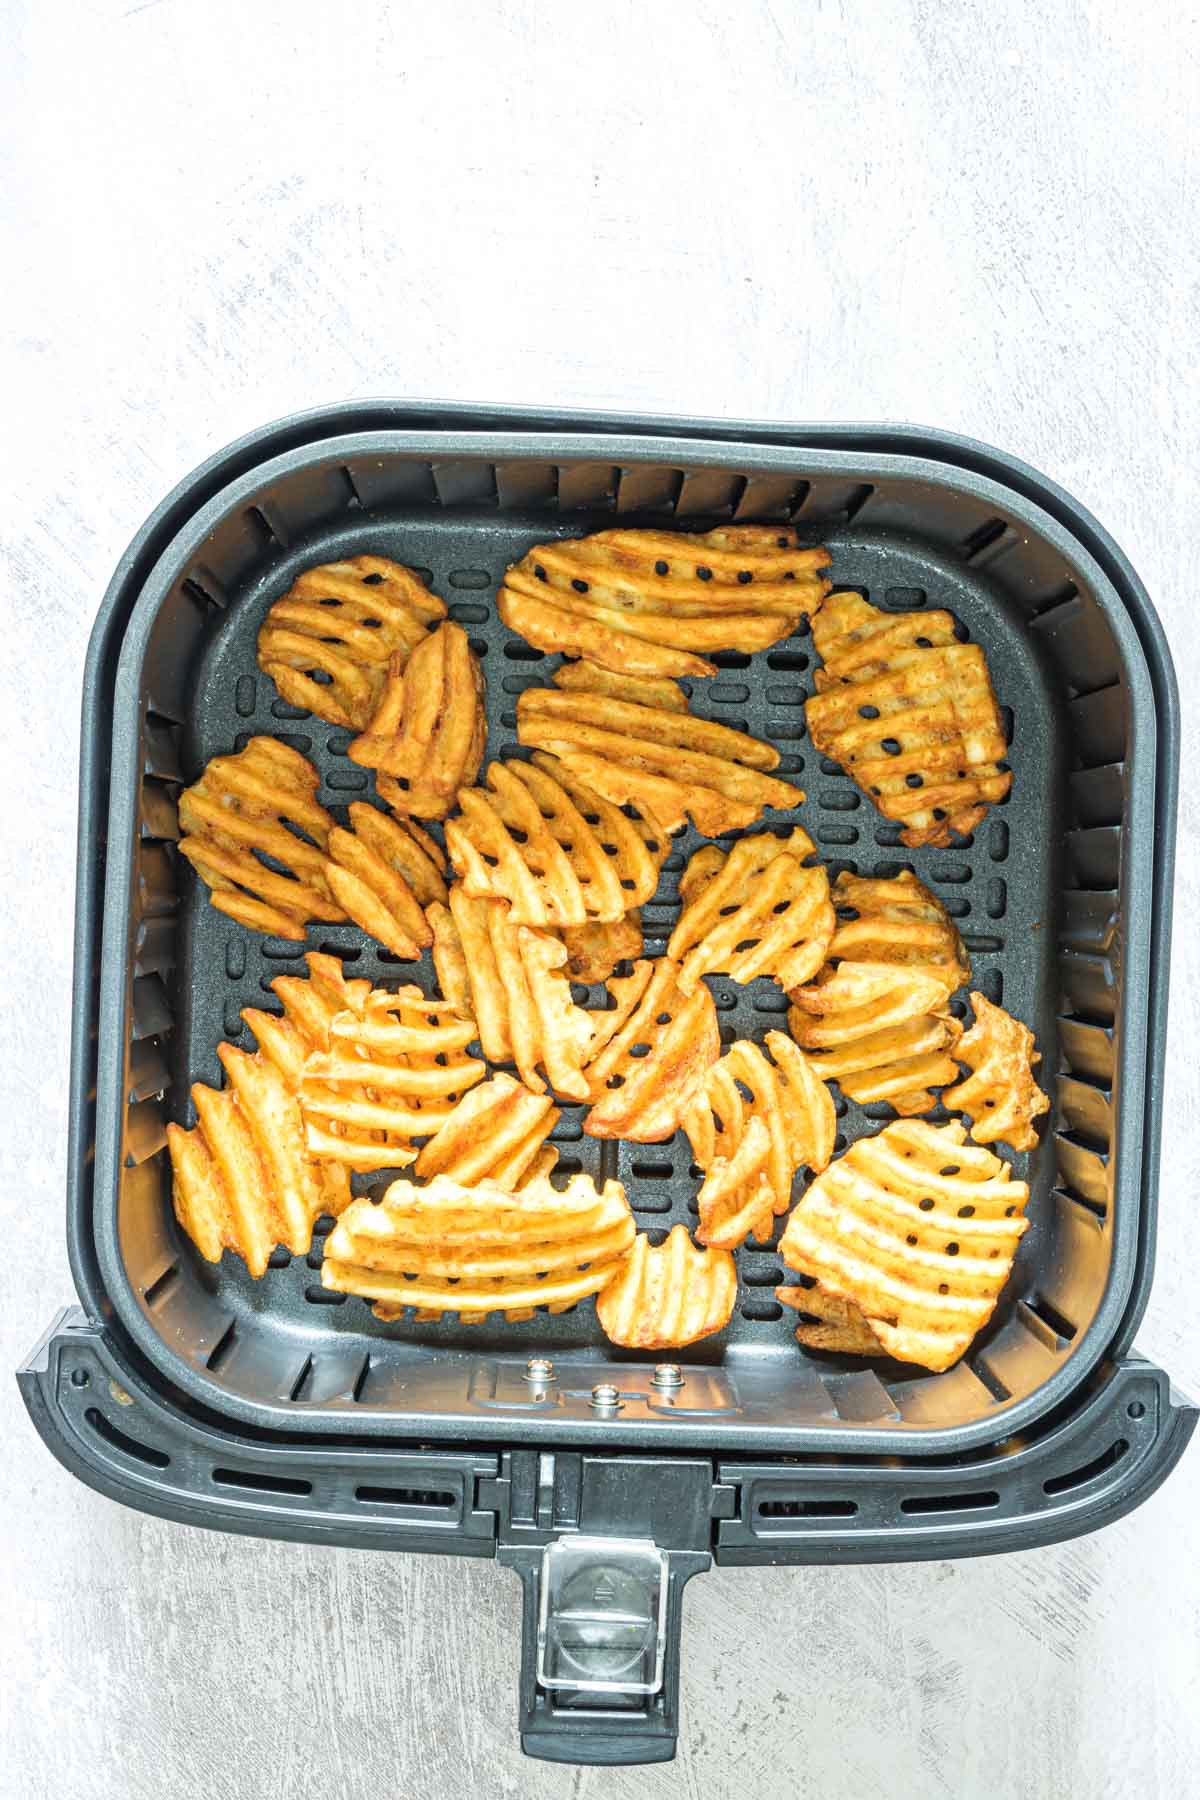 top down view of the cooked frozen waffle fries inside the air fryer basket